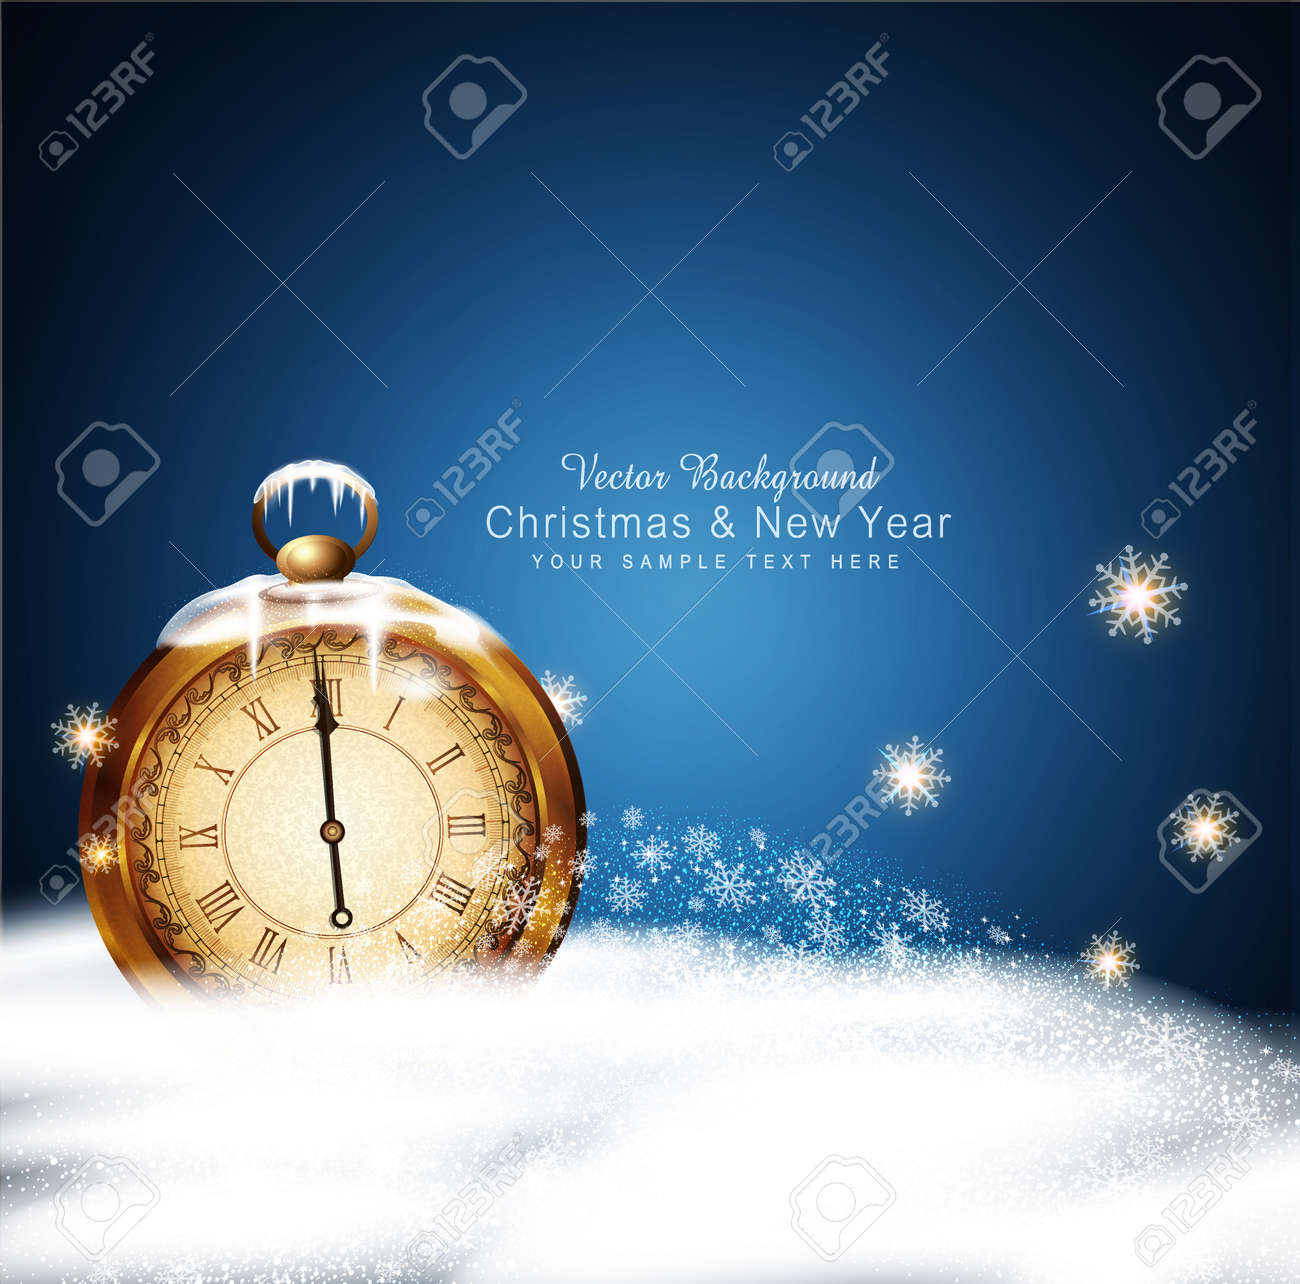 vector Christmas background with old clocks, snow, snowflakes and snow drifts - 48545112